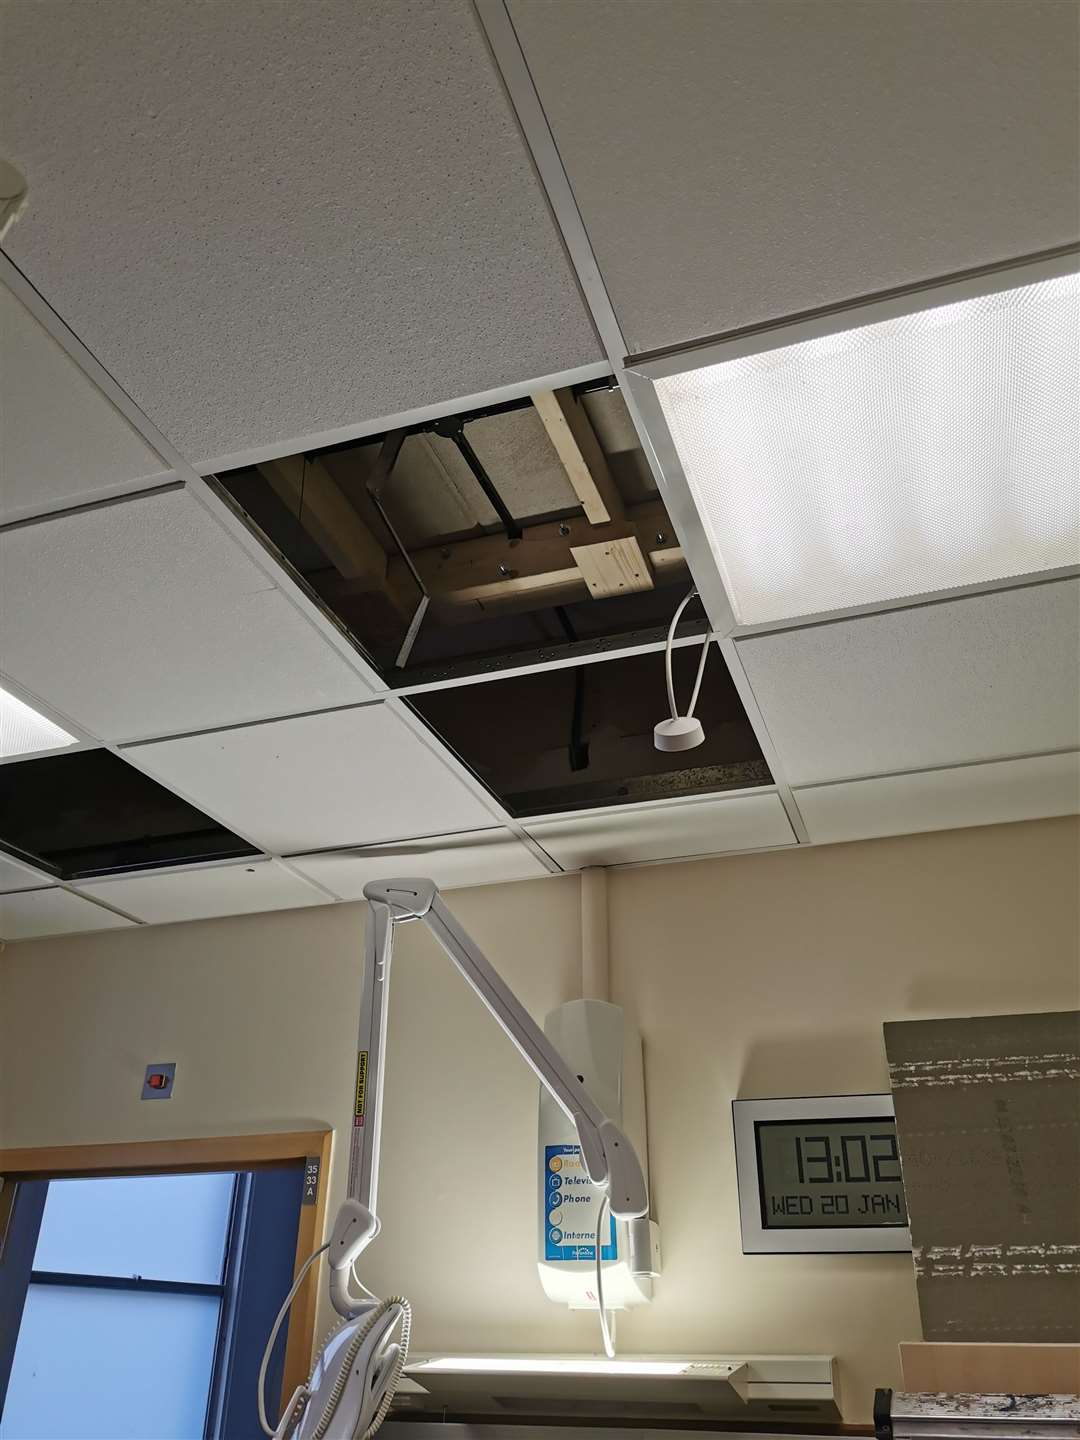 The current state of the QEH roof, held up by steel beams (44161640)